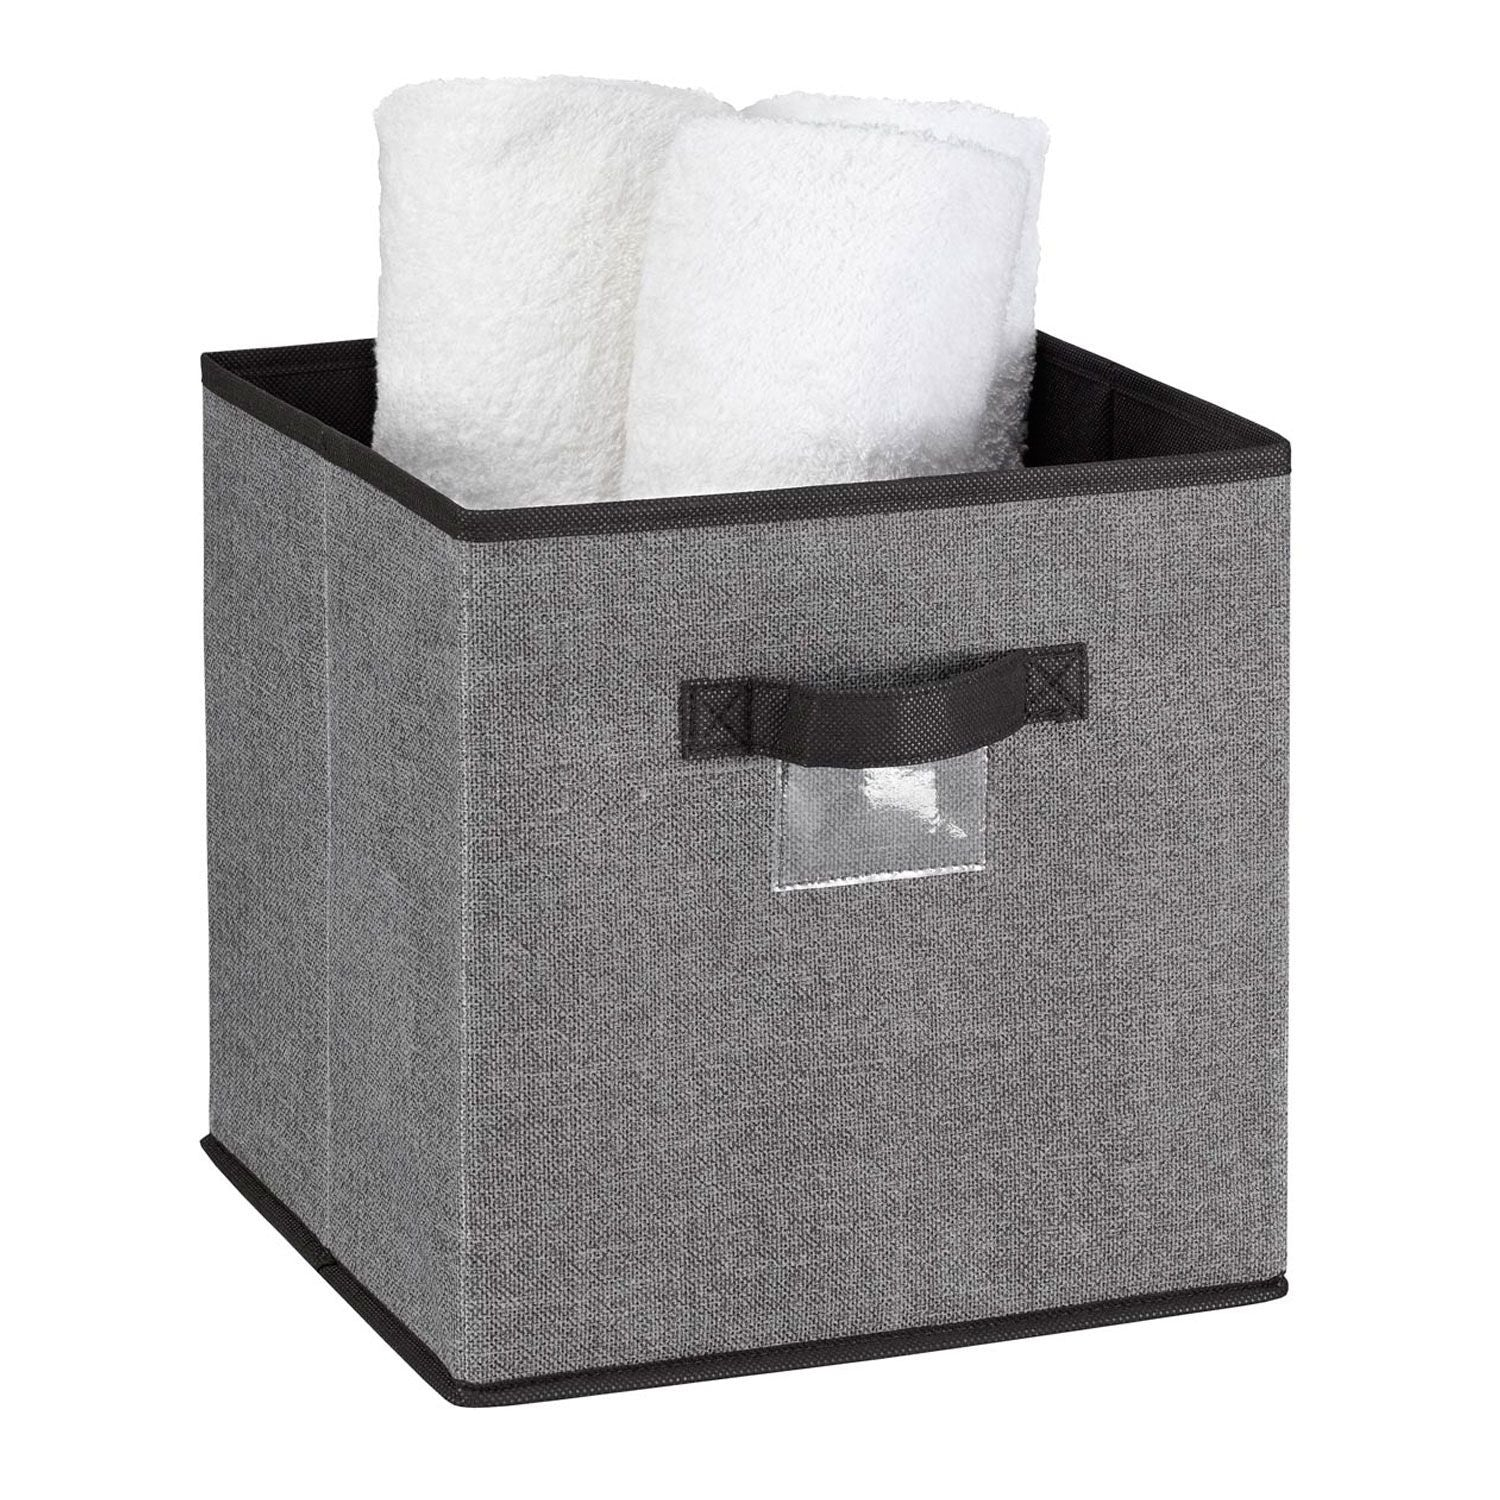 Storage Box - Cube - Grey